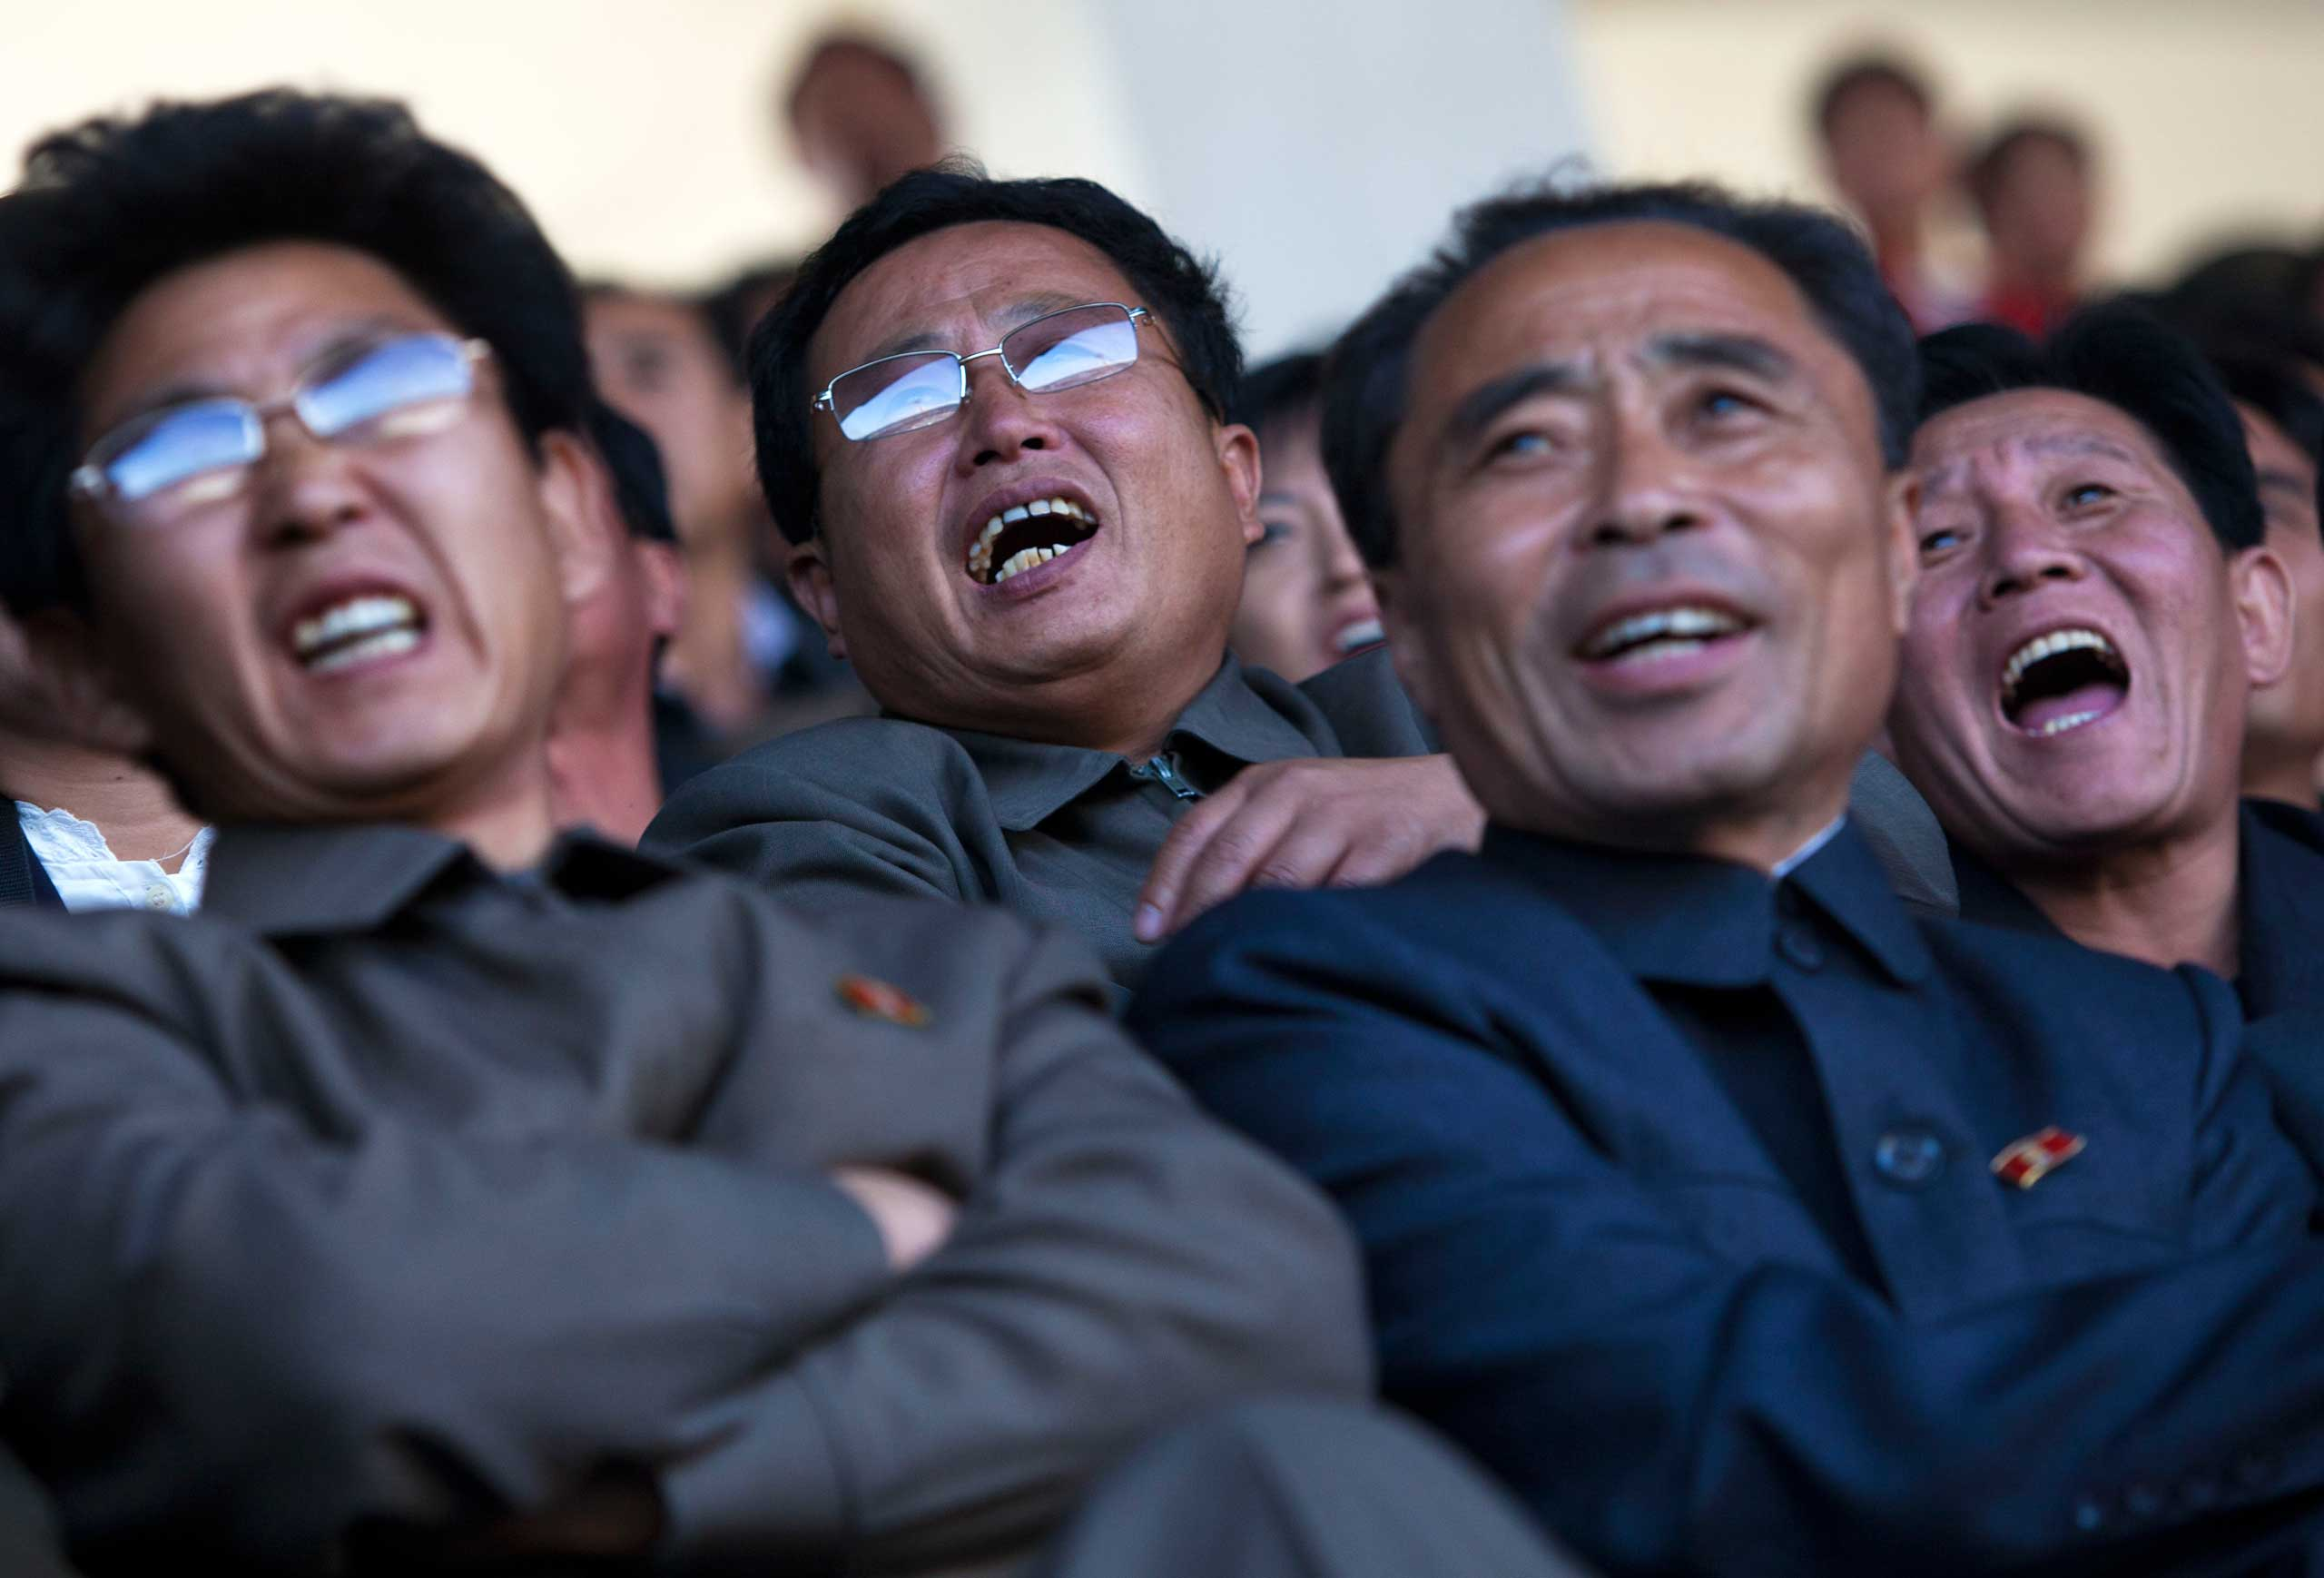 Oct. 11, 2011. North Korean soccer fans react after their team missed a goal during a World Cup qualifying match between North Korea and Uzbekistan, in Pyongyang.